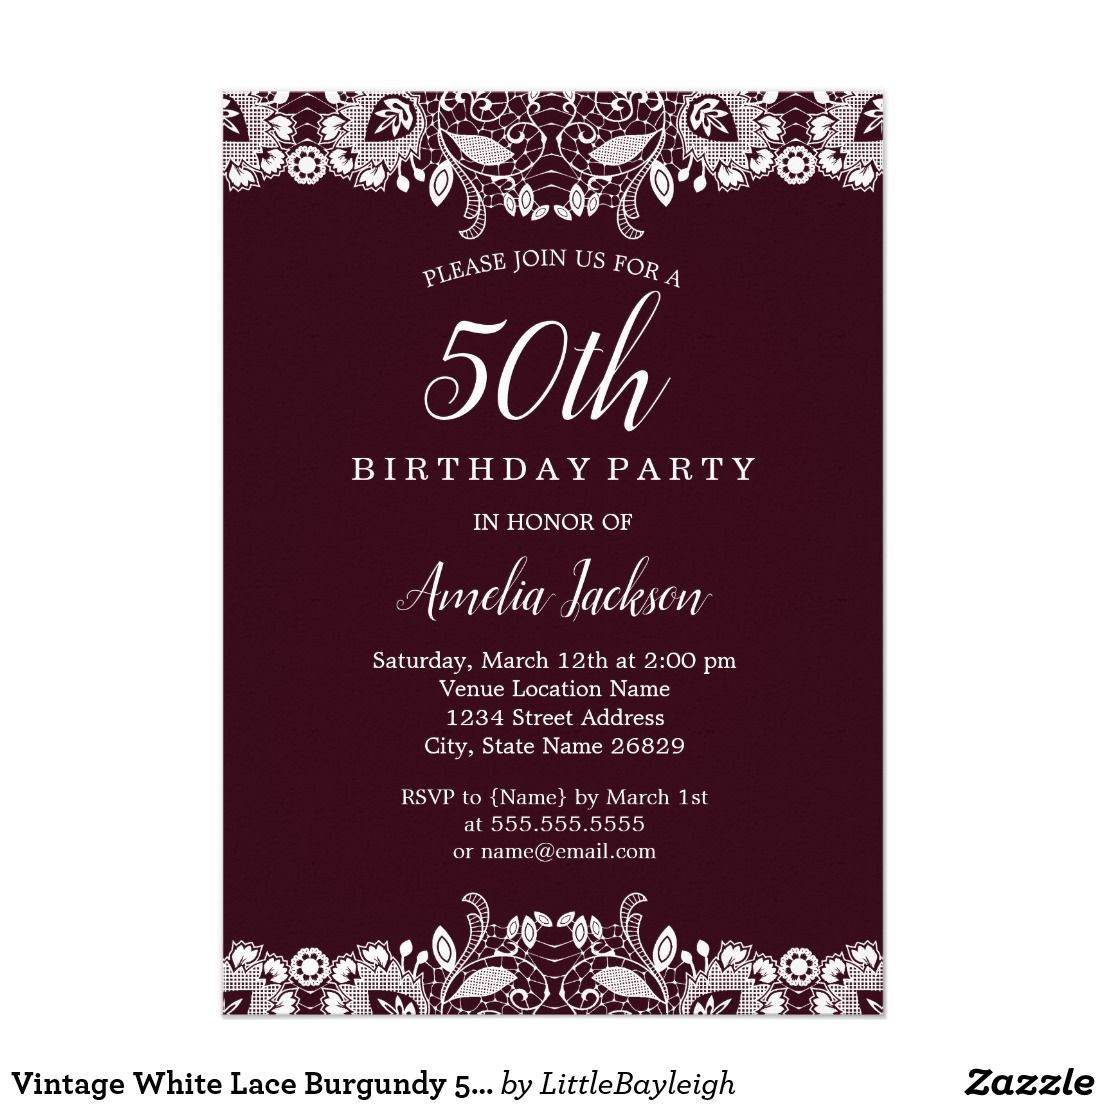 Vintage White Lace Burgundy 50th Birthday Party Card | 50 birthday ...